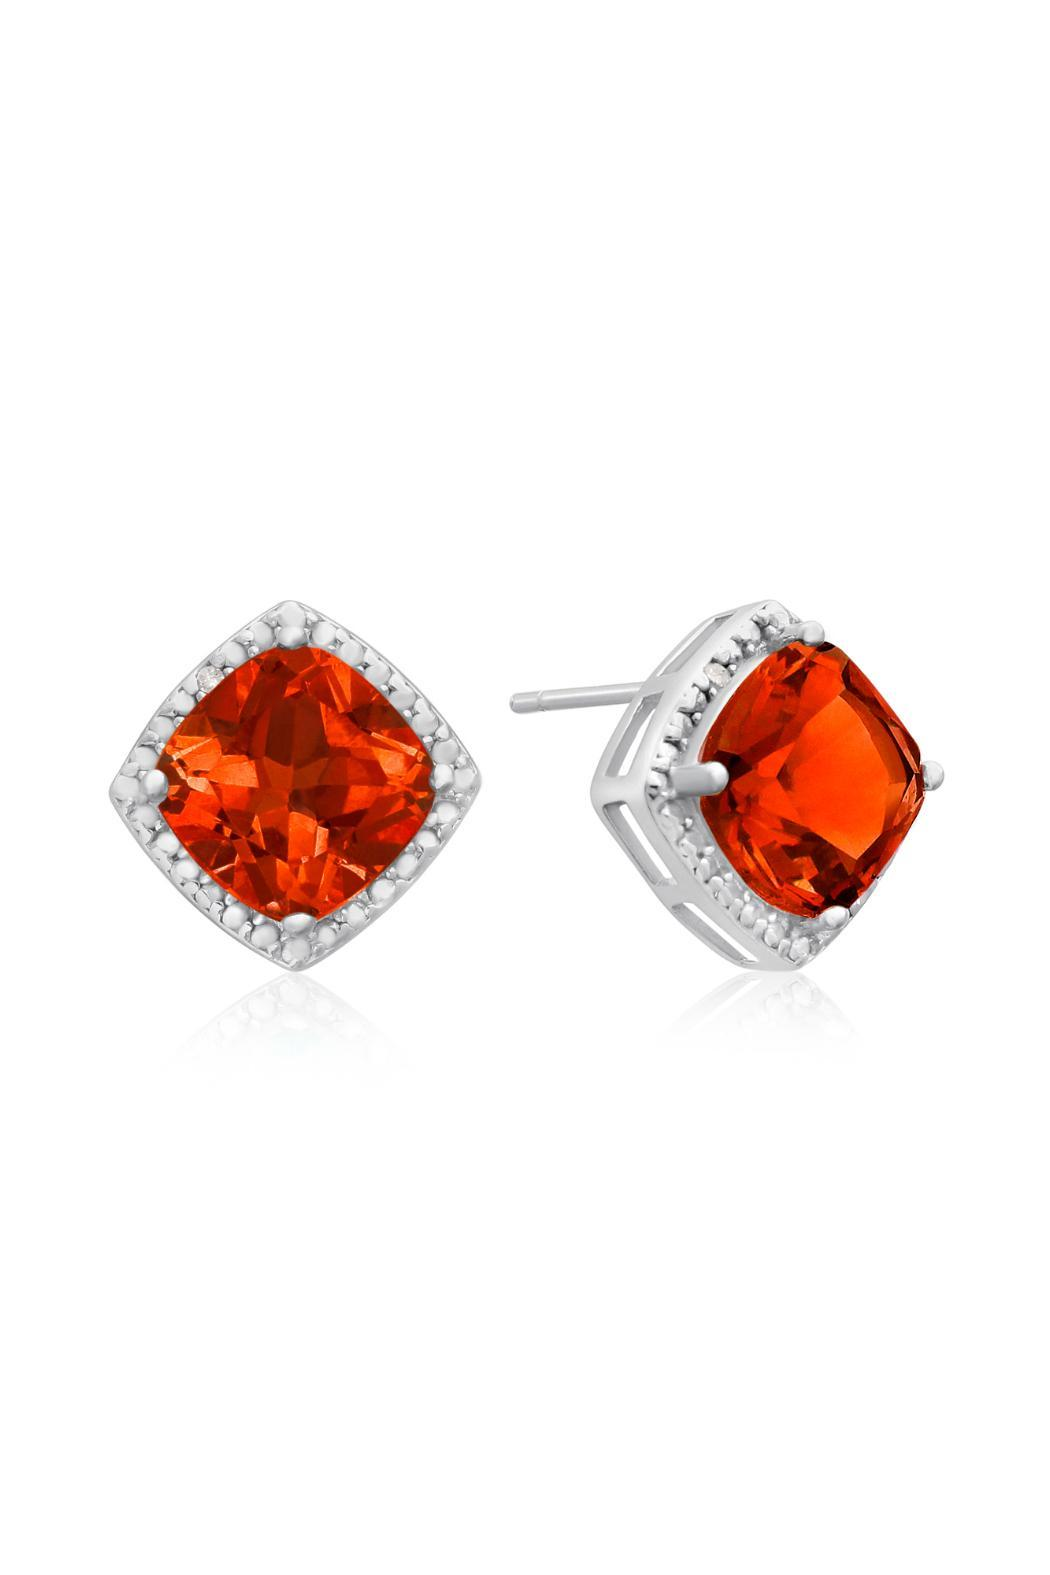 products padparadscha eco light sapphire earrings jewelry friendly aide chatham